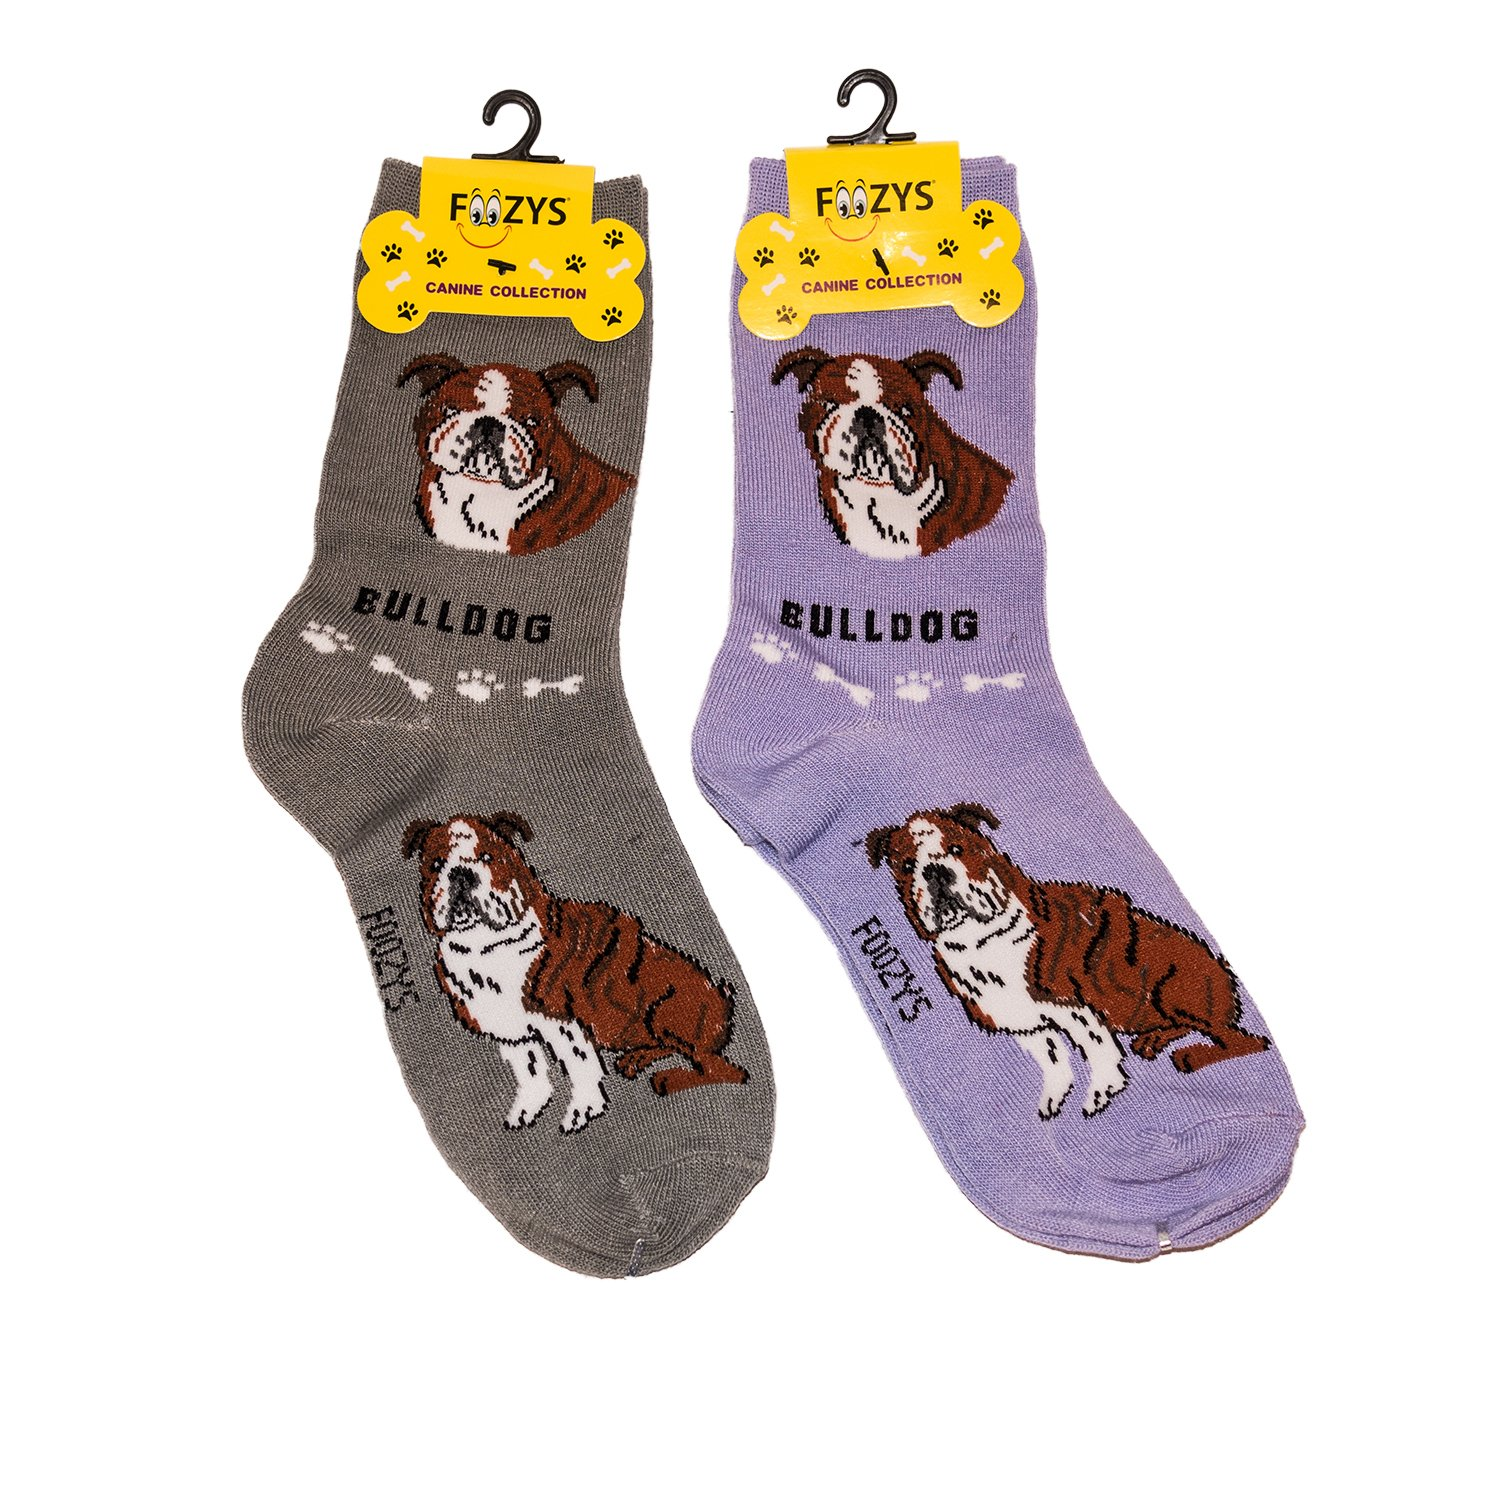 Goldendoodle Dog Beach Puppy Unisex Funny Casual Crew Socks Athletic Socks For Boys Girls Kids Teenagers